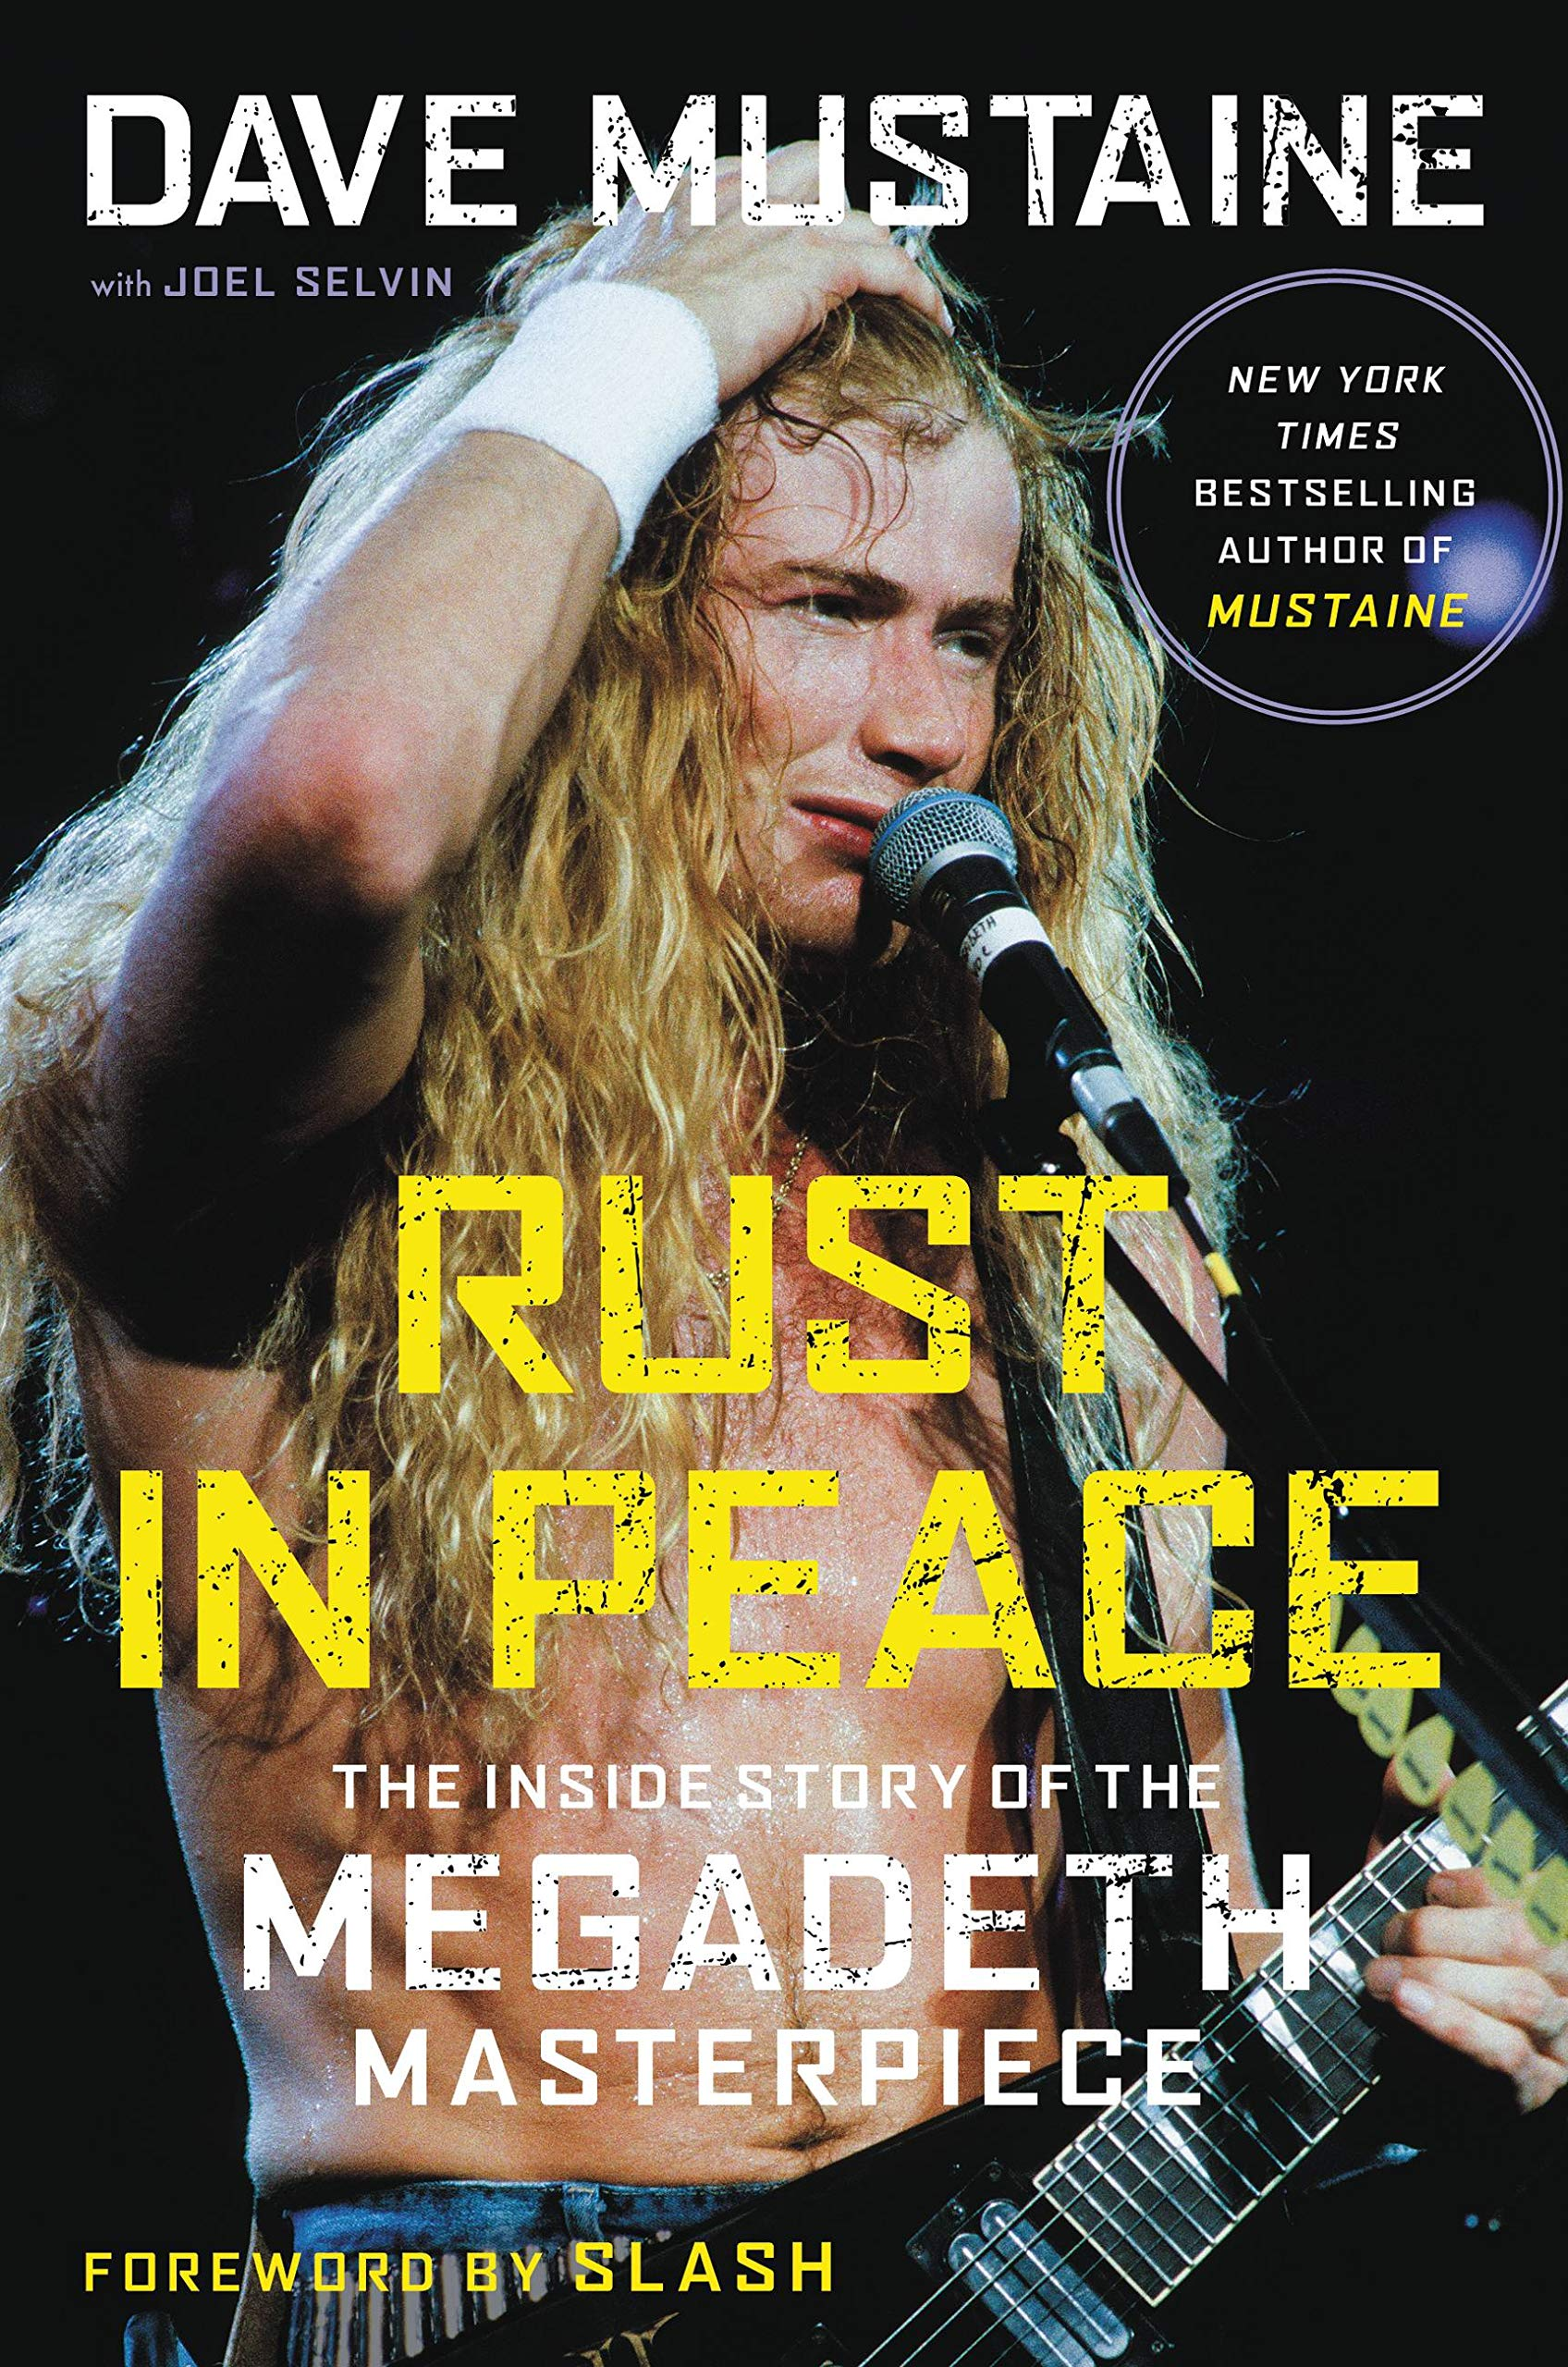 Amazon.com: Rust in Peace: The Inside Story of the Megadeth Masterpiece  (9780306846021): Mustaine, Dave, Selvin, Joel, Slash: Books